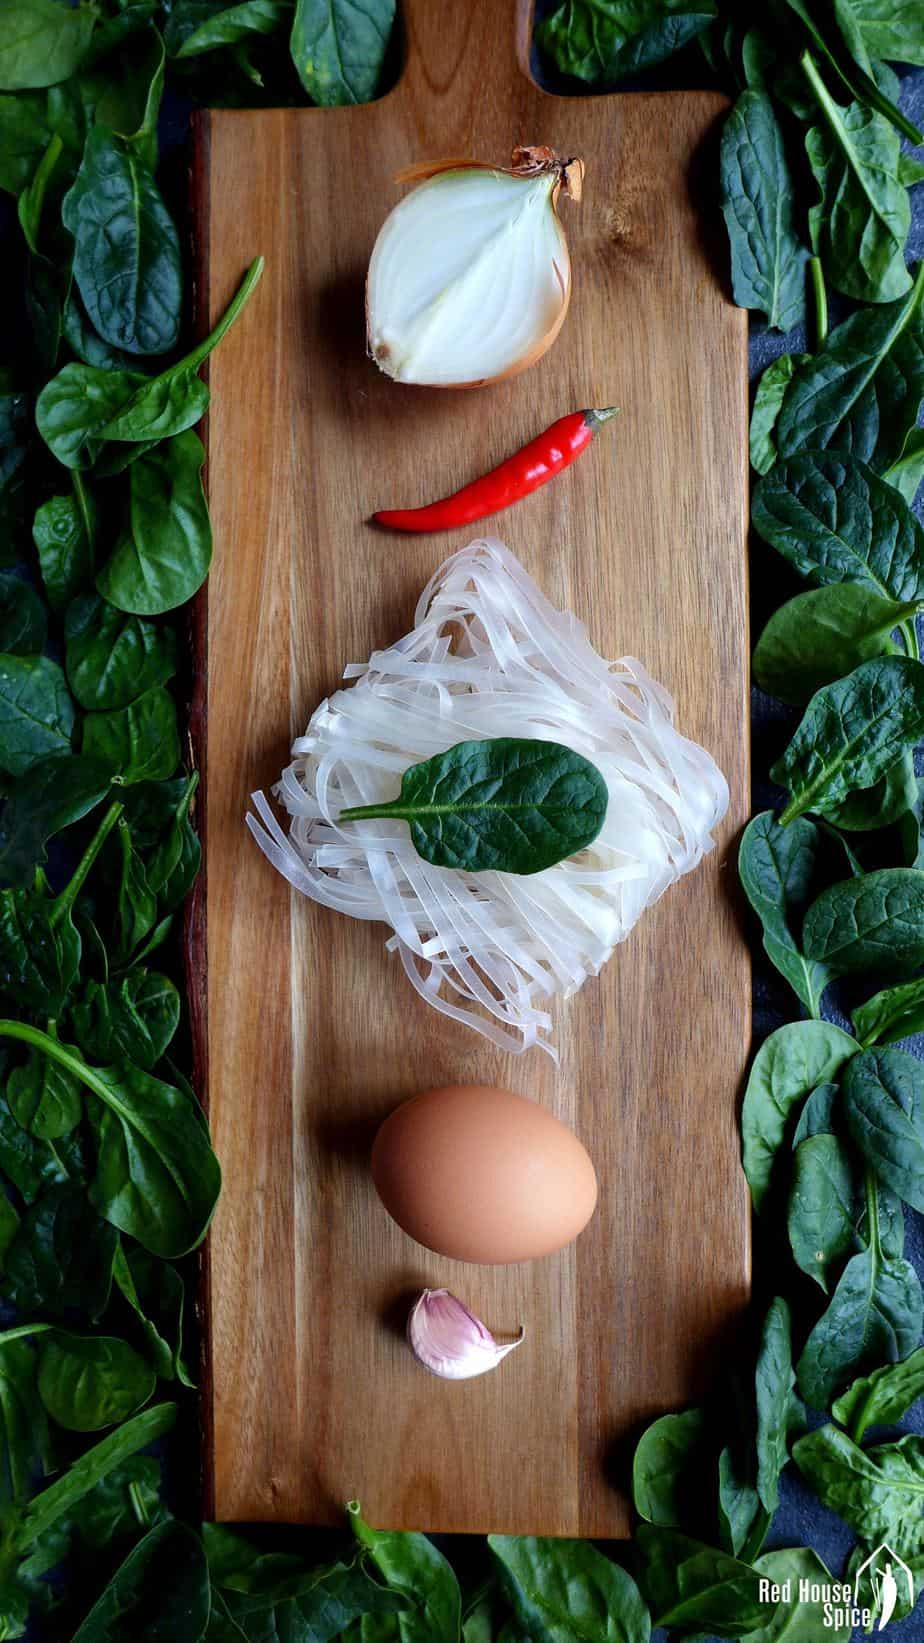 onion, chilli, rice noodles, egg, garlic and spinach